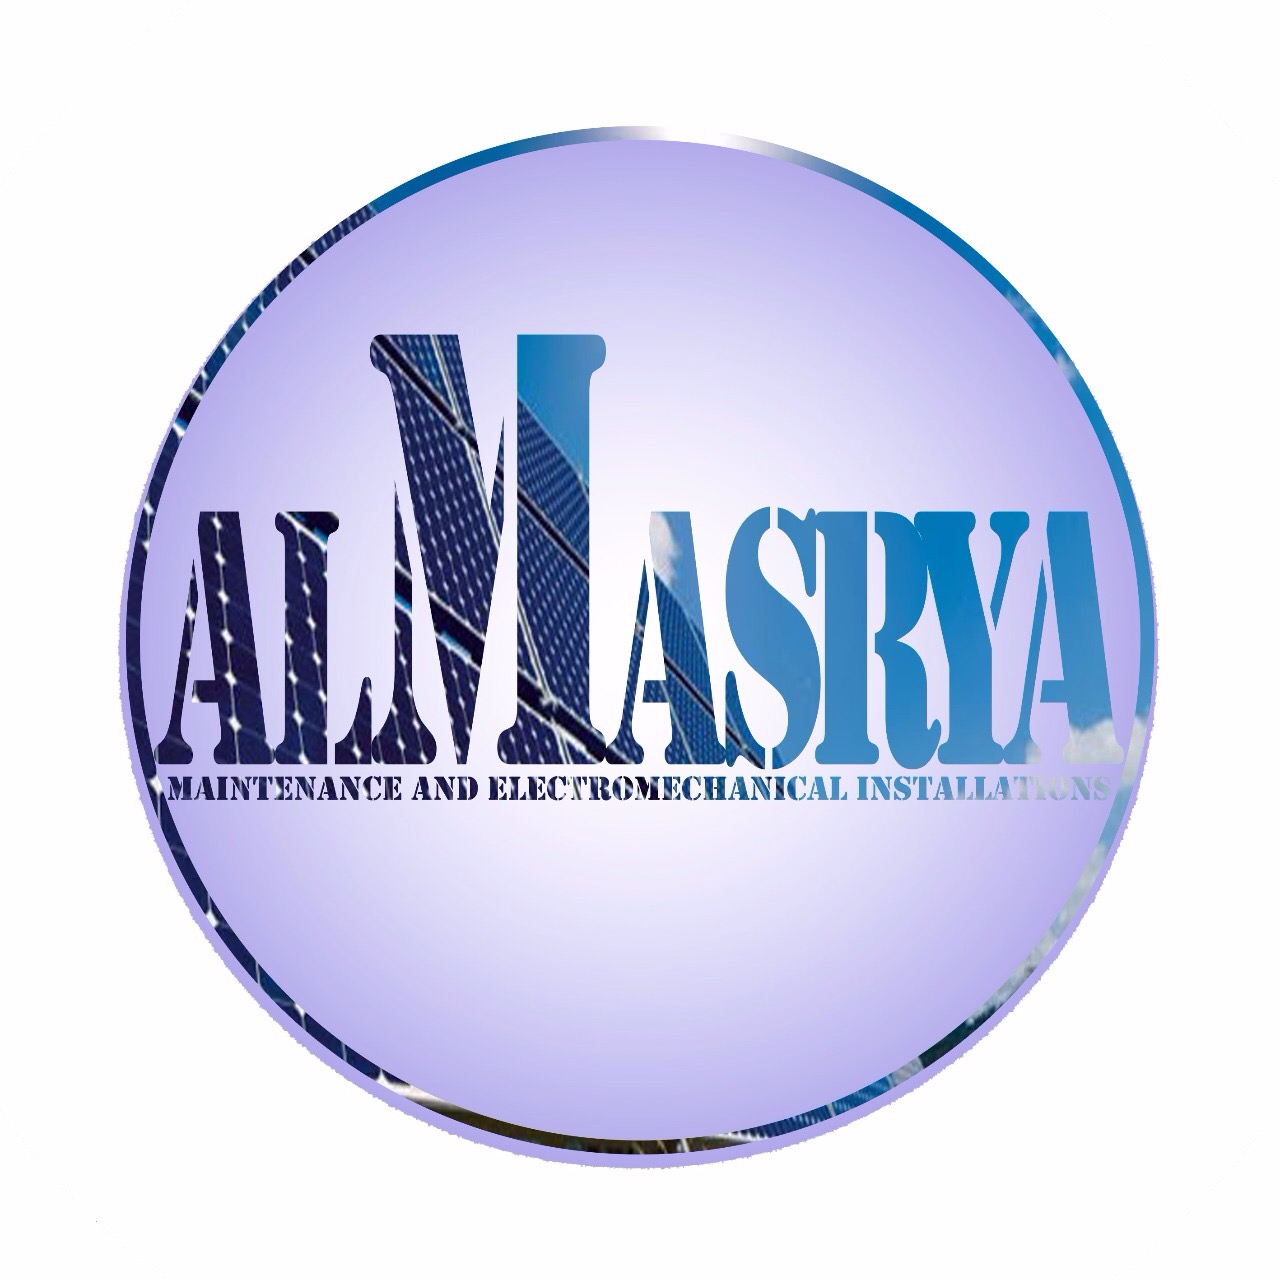 ALMASRYA Maintenance And Installations